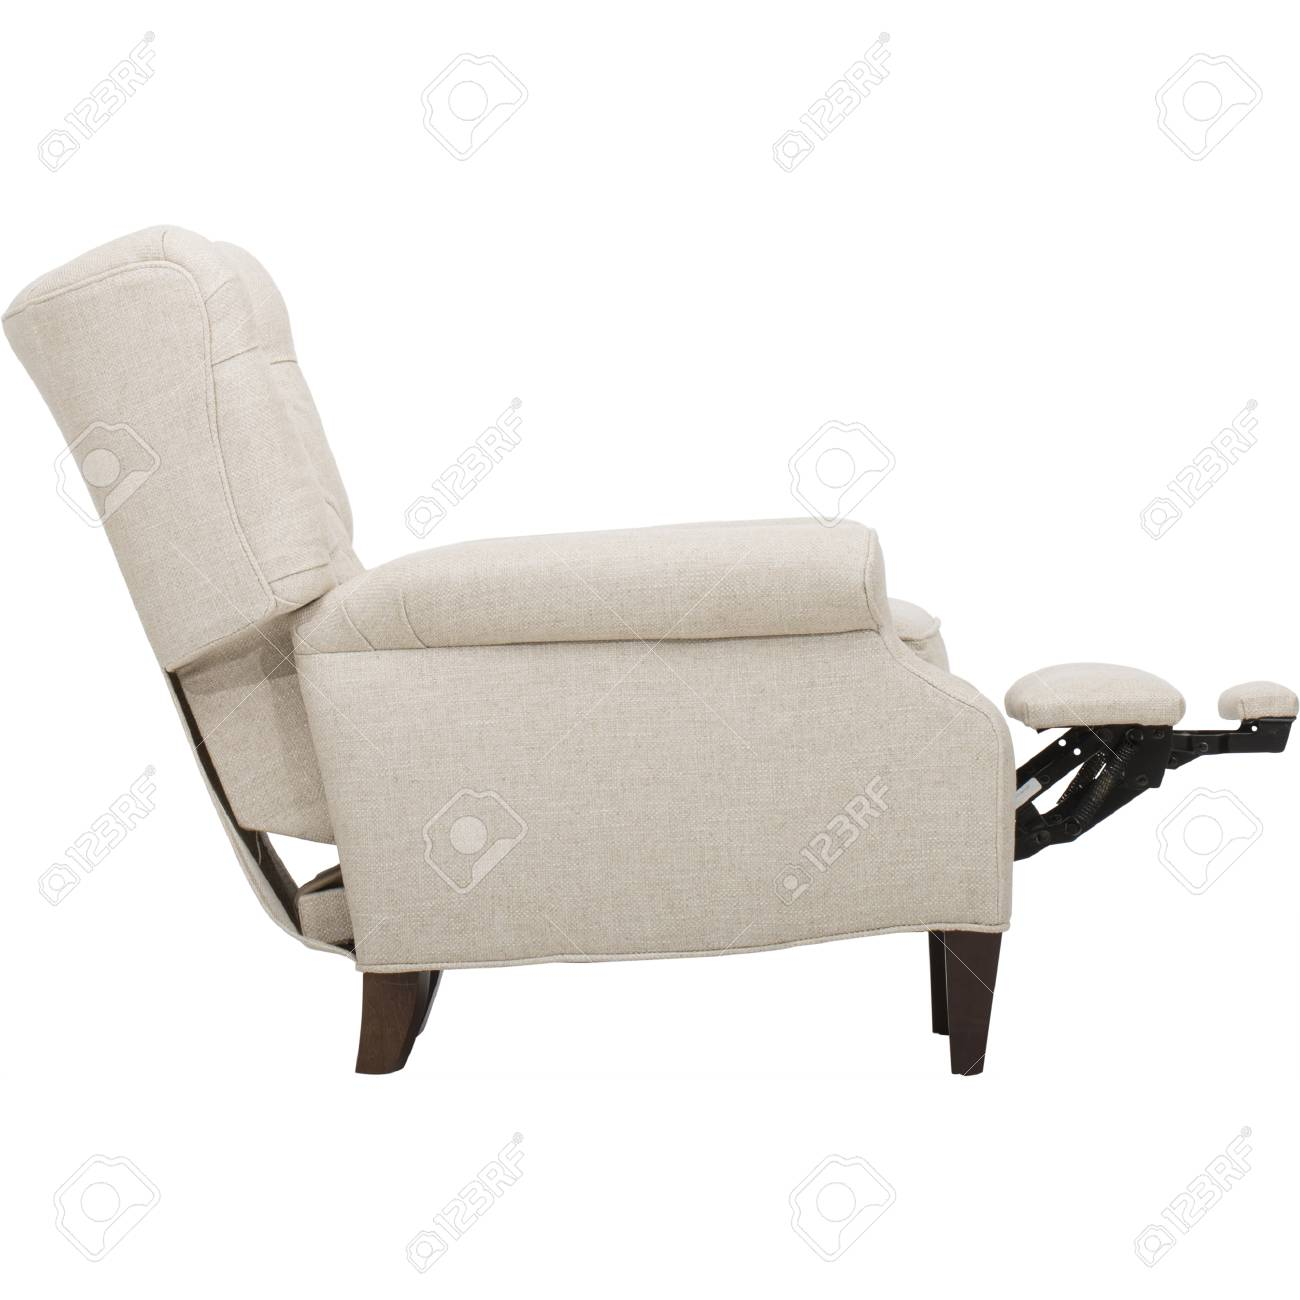 Picture of: Light Beige Fabric Recliner Club Chair Stock Photo Picture And Royalty Free Image Image 93014127